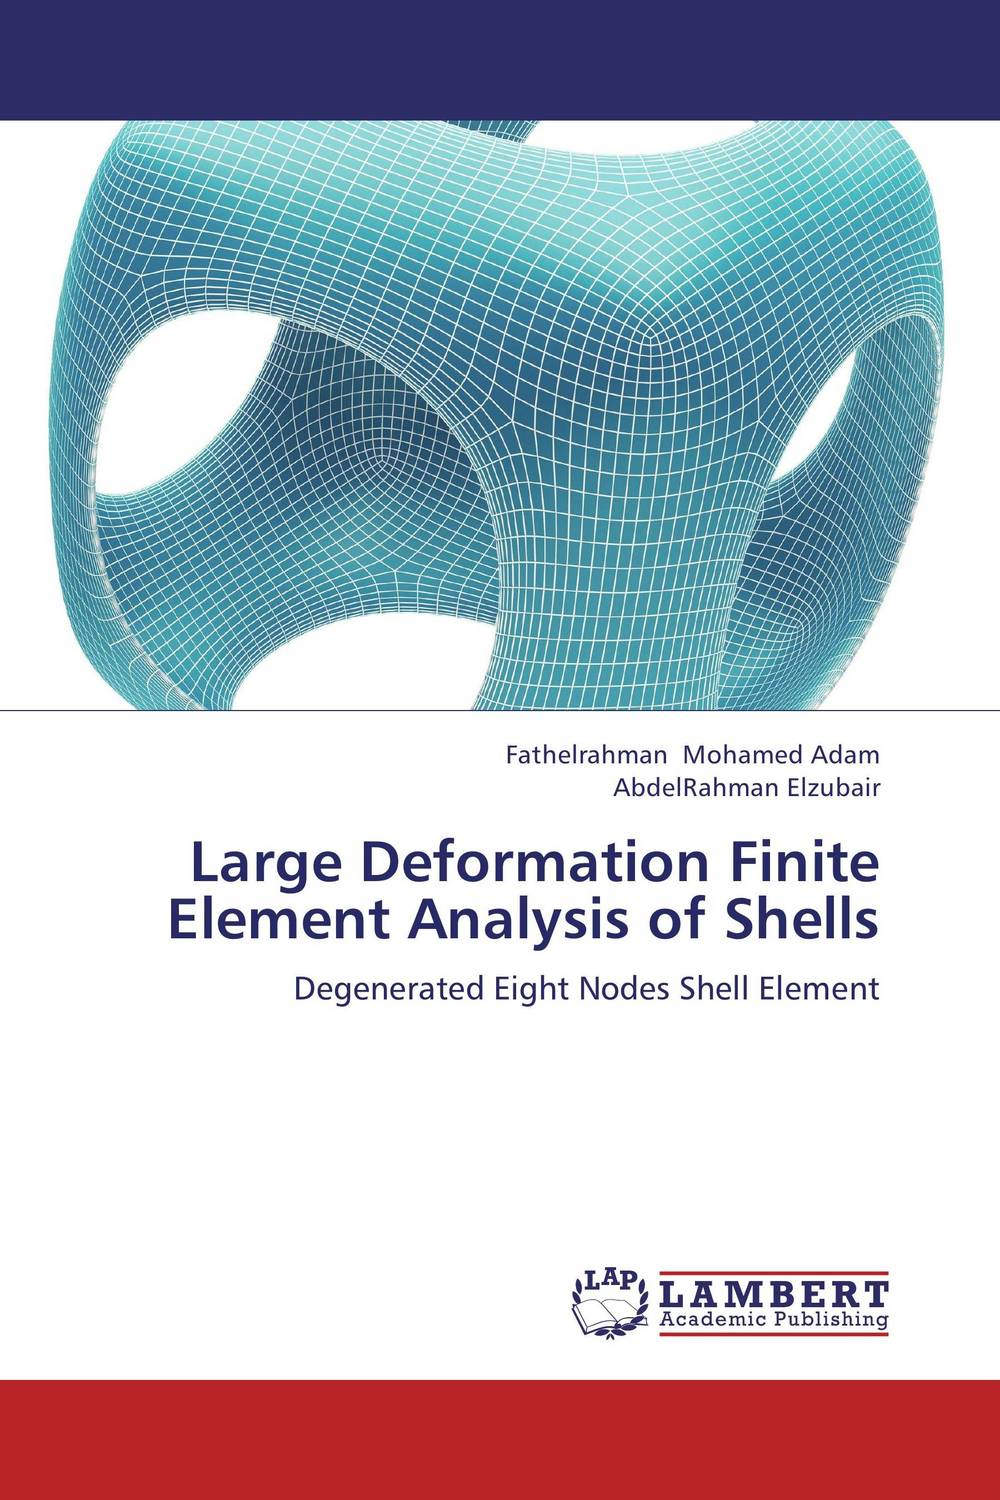 Large Deformation Finite Element Analysis of Shells rd cook cook concepts and applications of finite element analysis 2ed